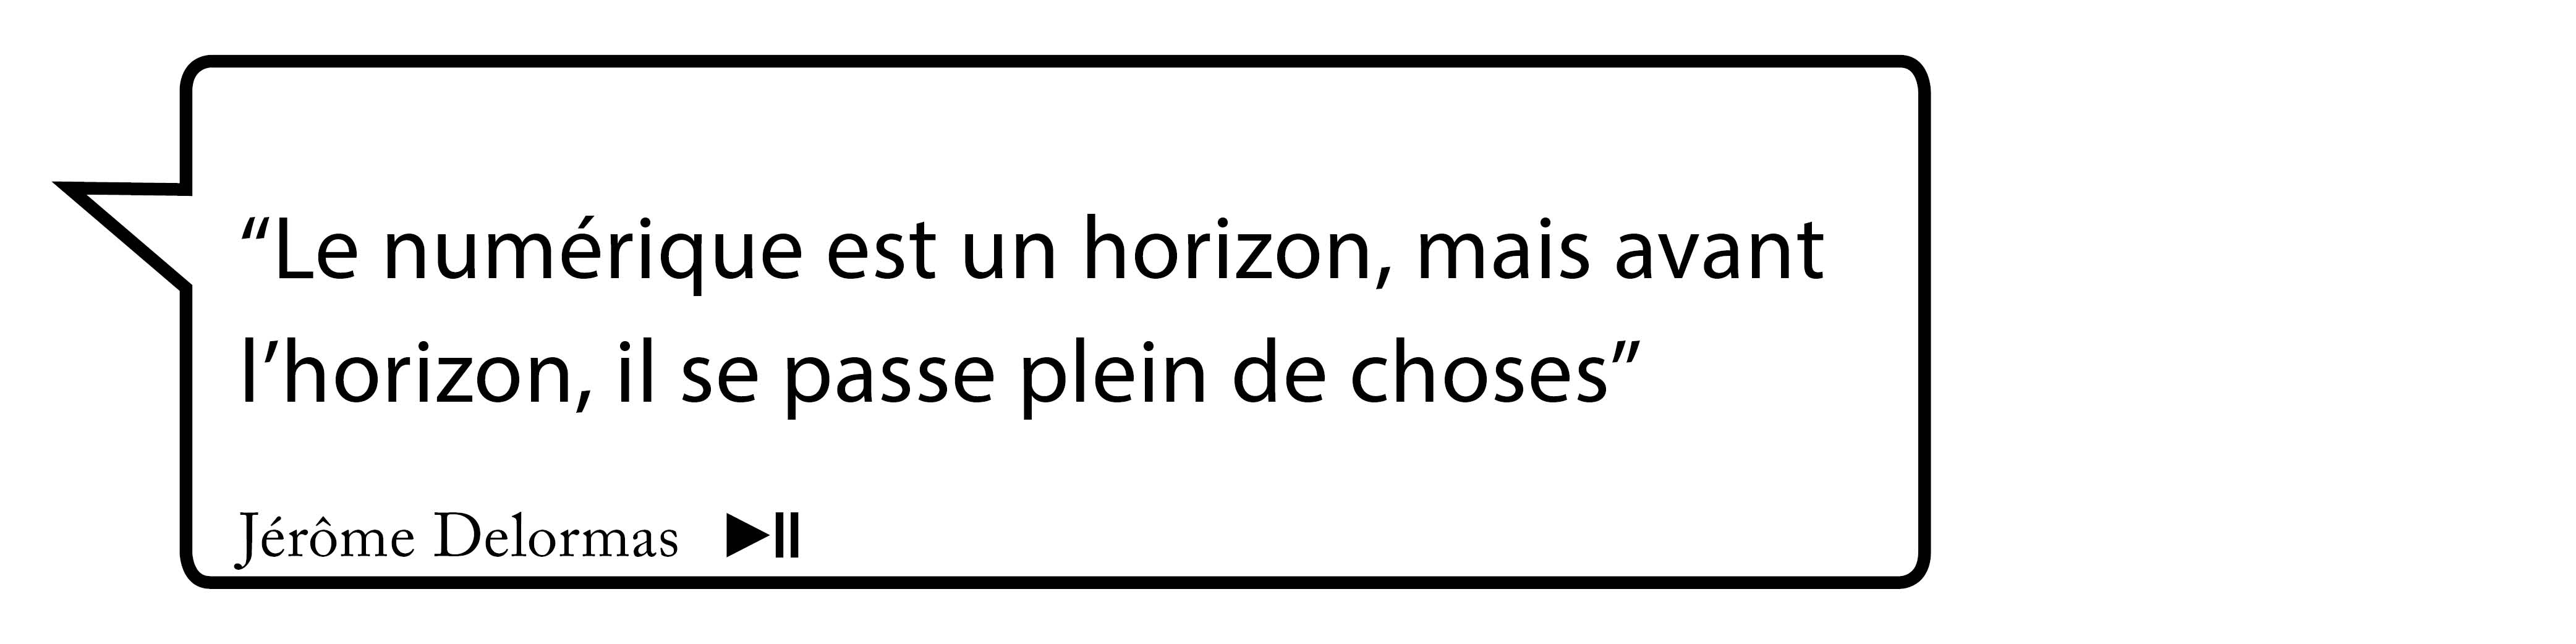 citationsblog10